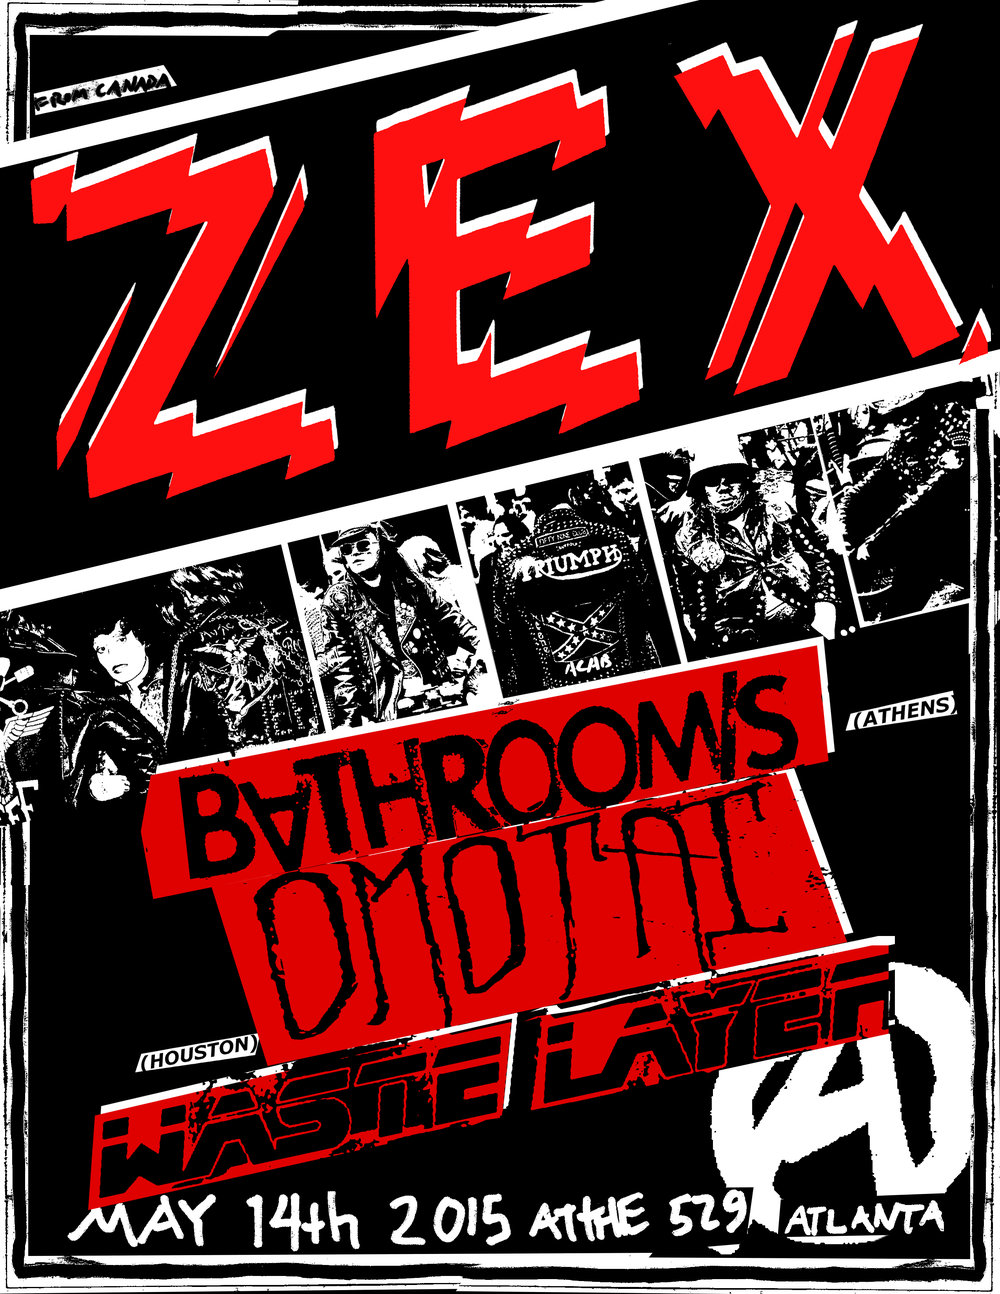 flyer-15.05.14-atlanta-zex-red.jpg